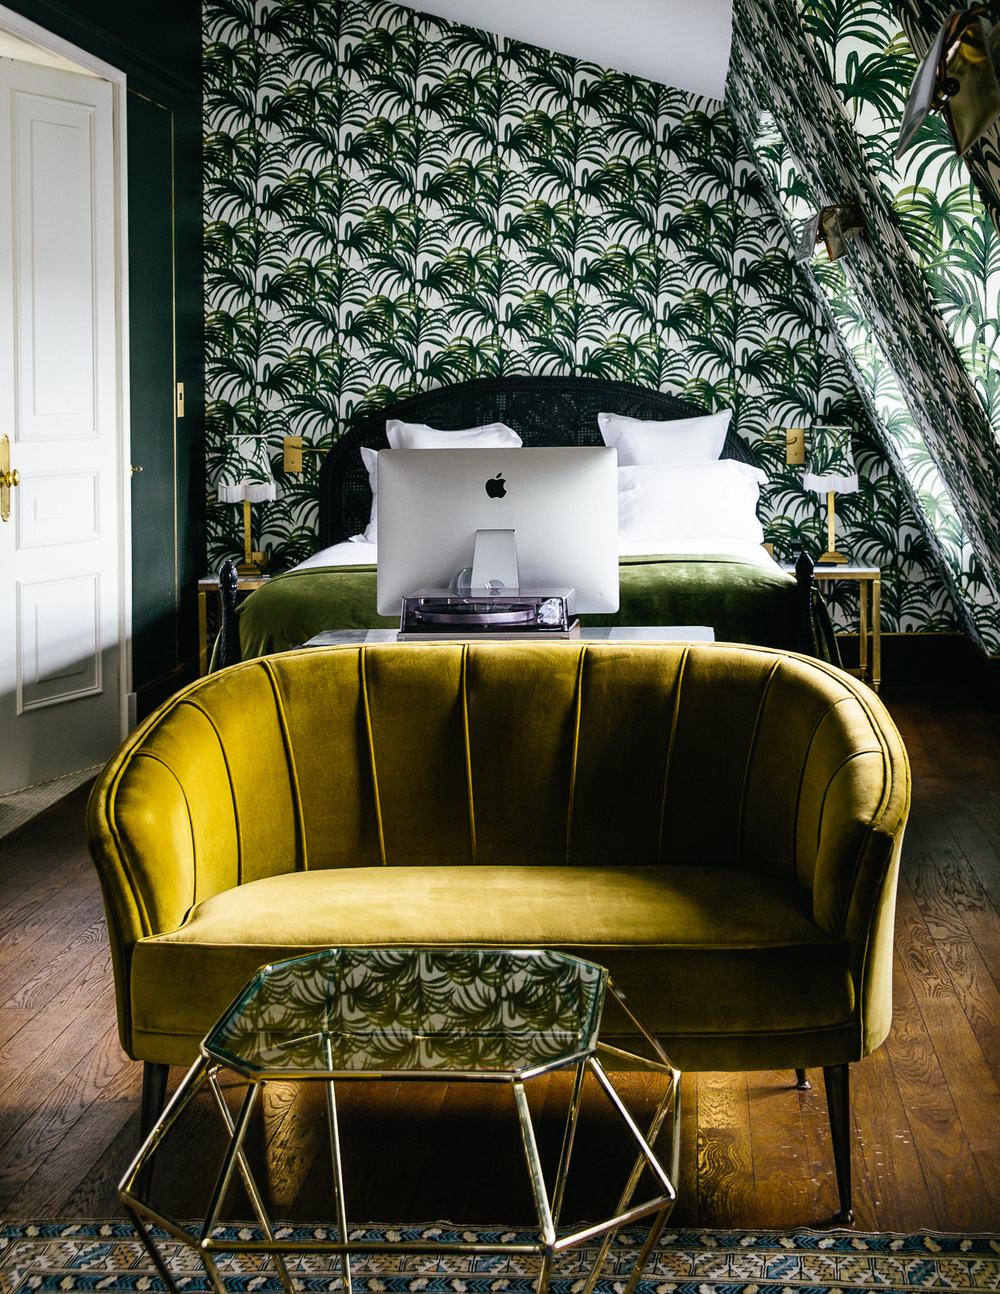 HOTEL PROVIDENCE 90 Rue Rene Boulanger, 75010 INSIDER TIP | While all rooms at the hotel are sumptuous in design and have built-in cocktail bars, it's the show-stopping penthouse suite that deserves special attention. Tropical wallpaper may transport you far beyond French borders but just head into the bathroom and peer out the window for a view firmly rooted in Paris: Sacre Coeur.